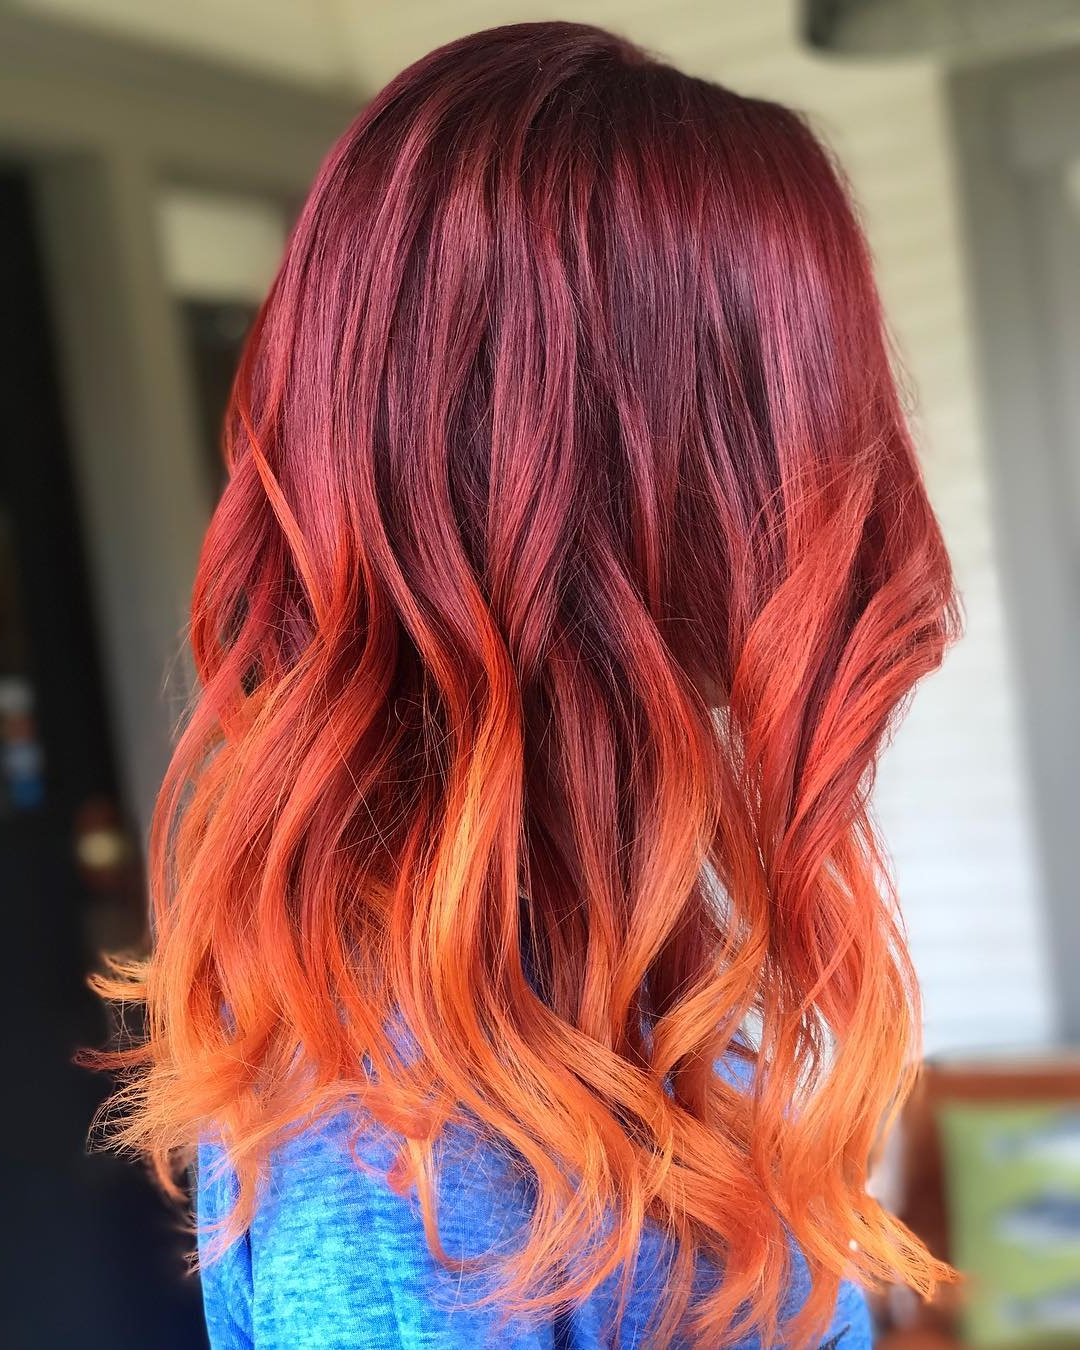 Most Up To Date Fire Red Medium Hairstyles With 20 Radical Styling Ideas For Your Red Ombre Hair (View 4 of 20)